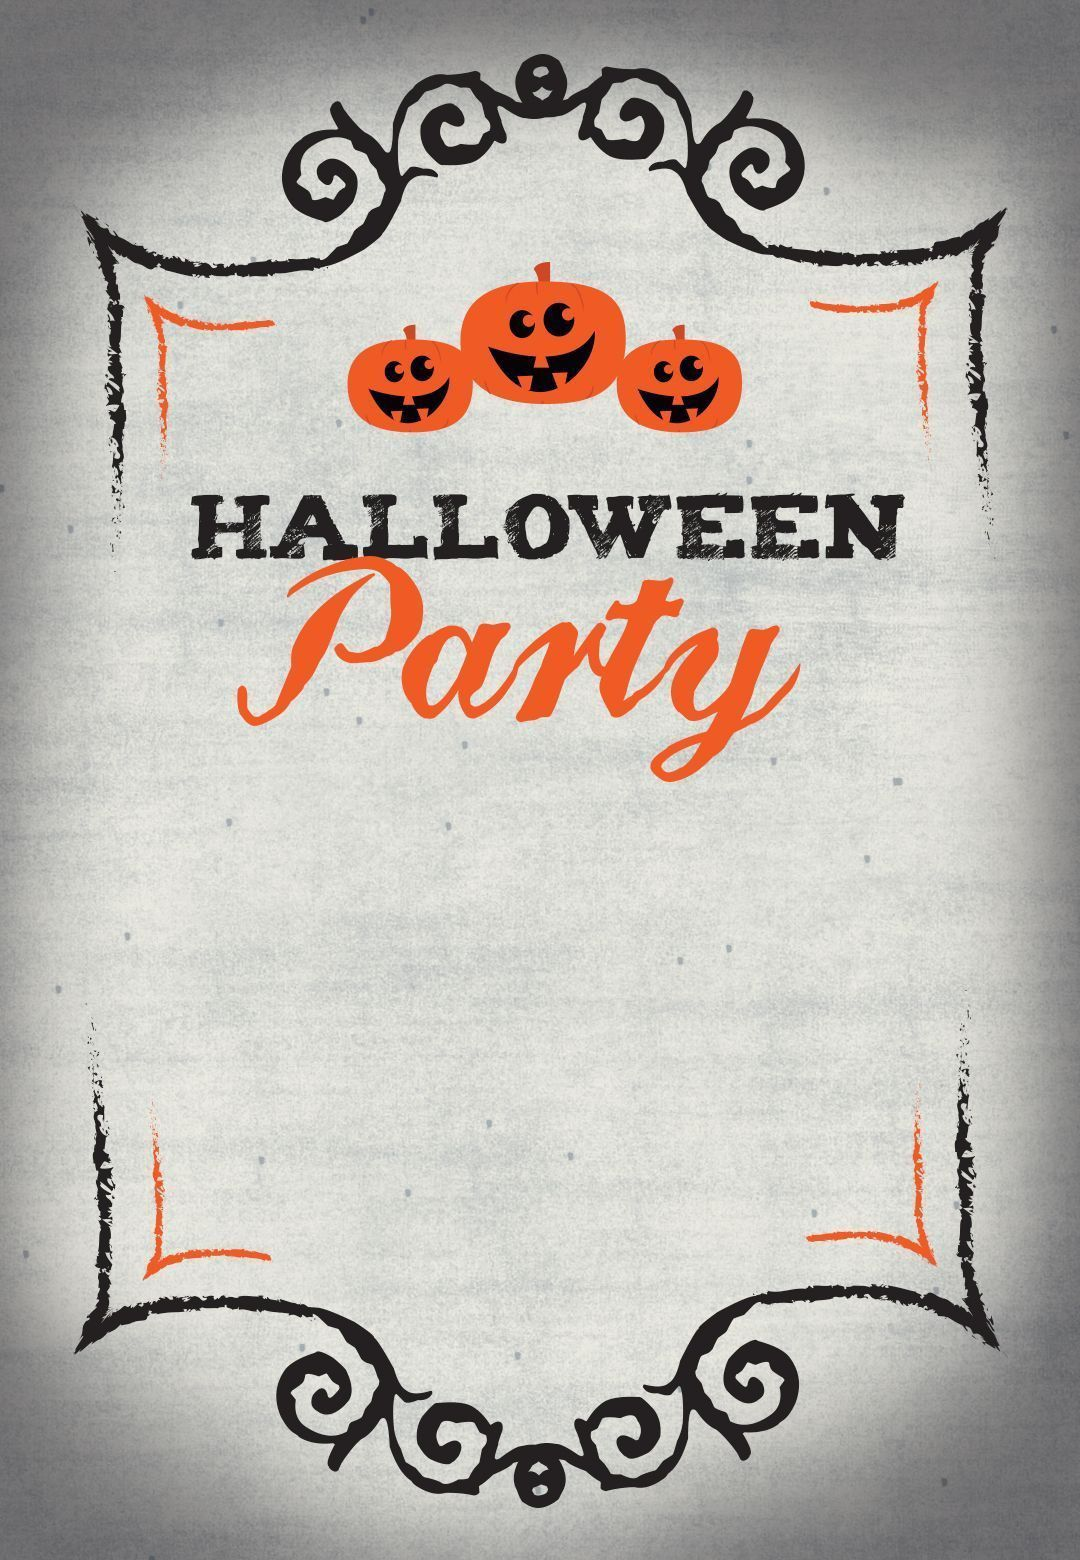 000 Remarkable Halloween Party Invite Template Sample  Spooky Invitation Free Printable Birthday DownloadFull